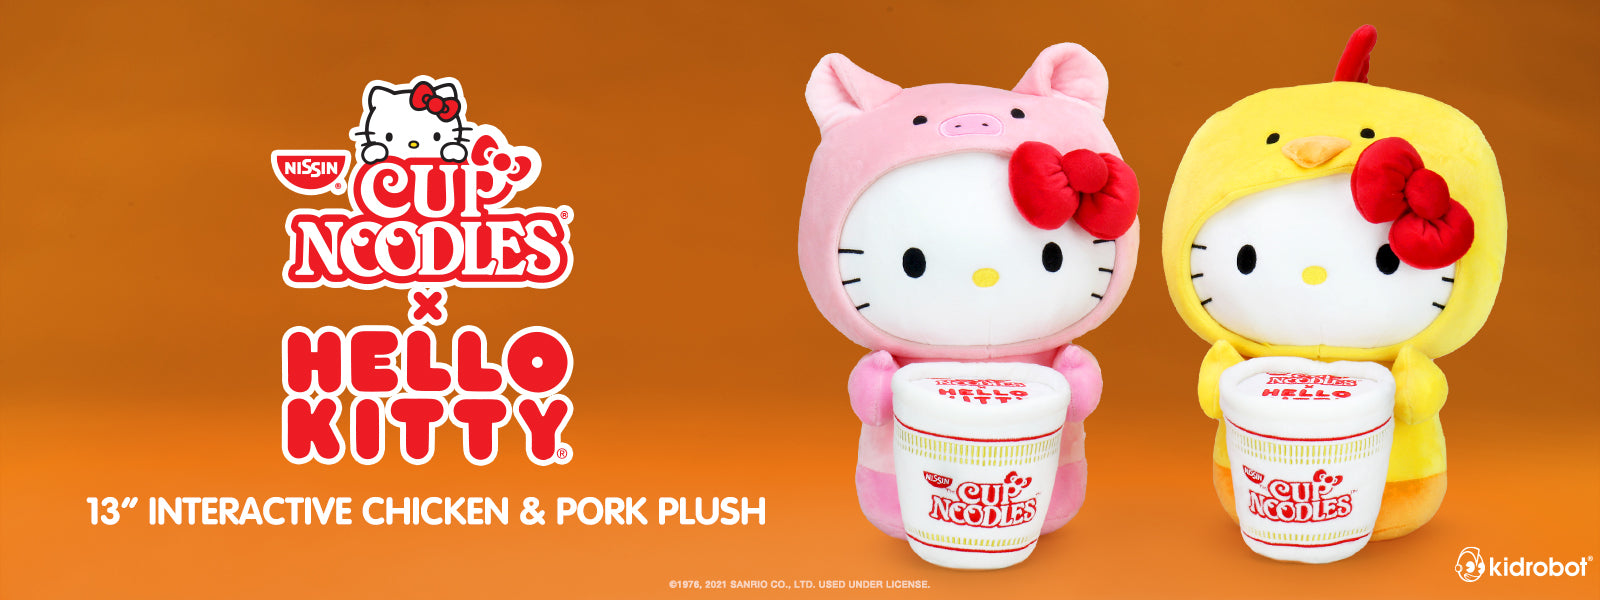 Cup Noodles x Hello Kitty Plush Toys by Kidrobot - Pork and Chicken Interactive Plush